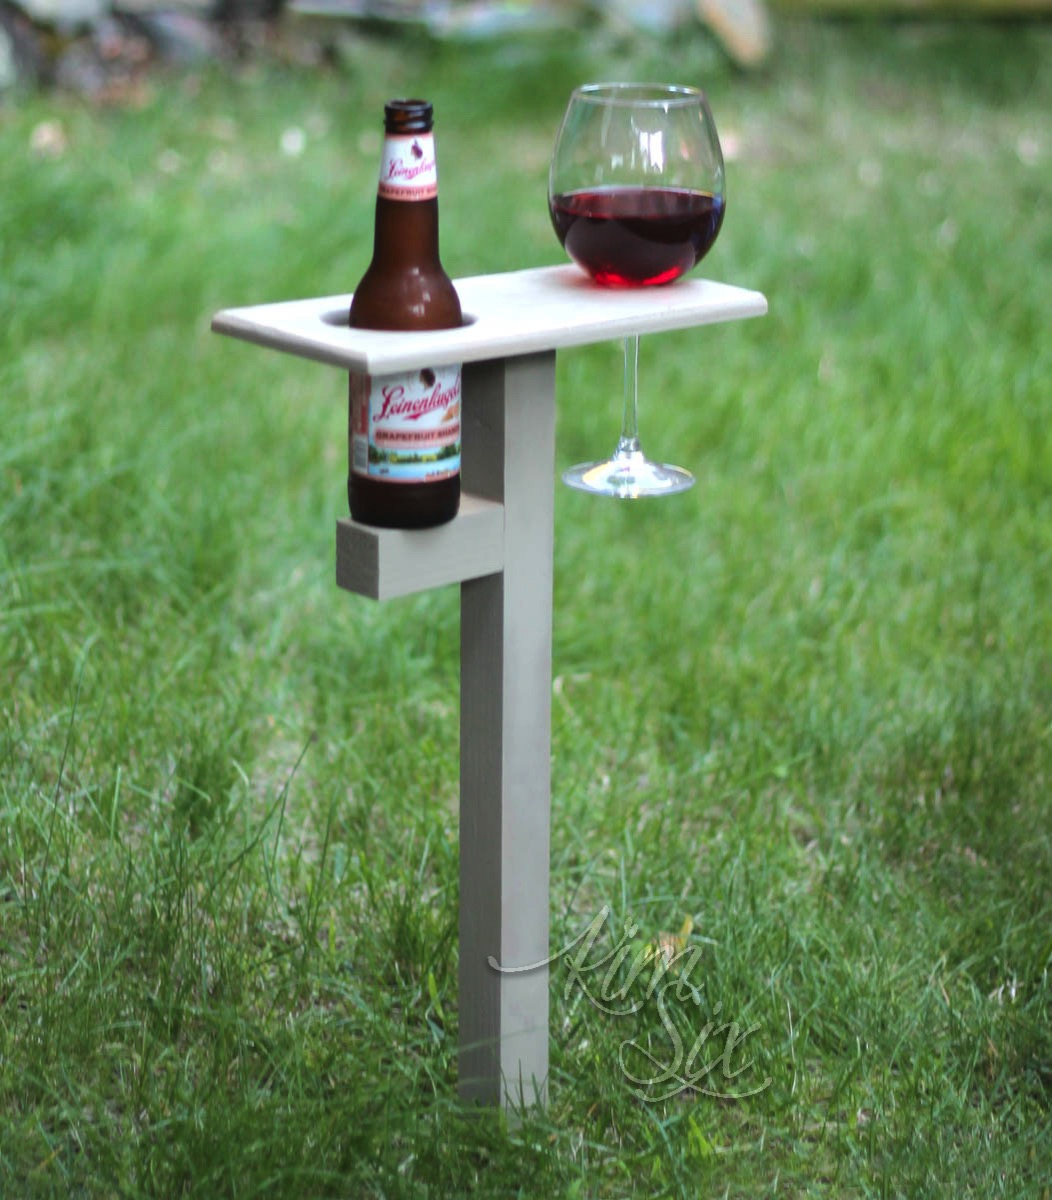 In ground beverage caddy